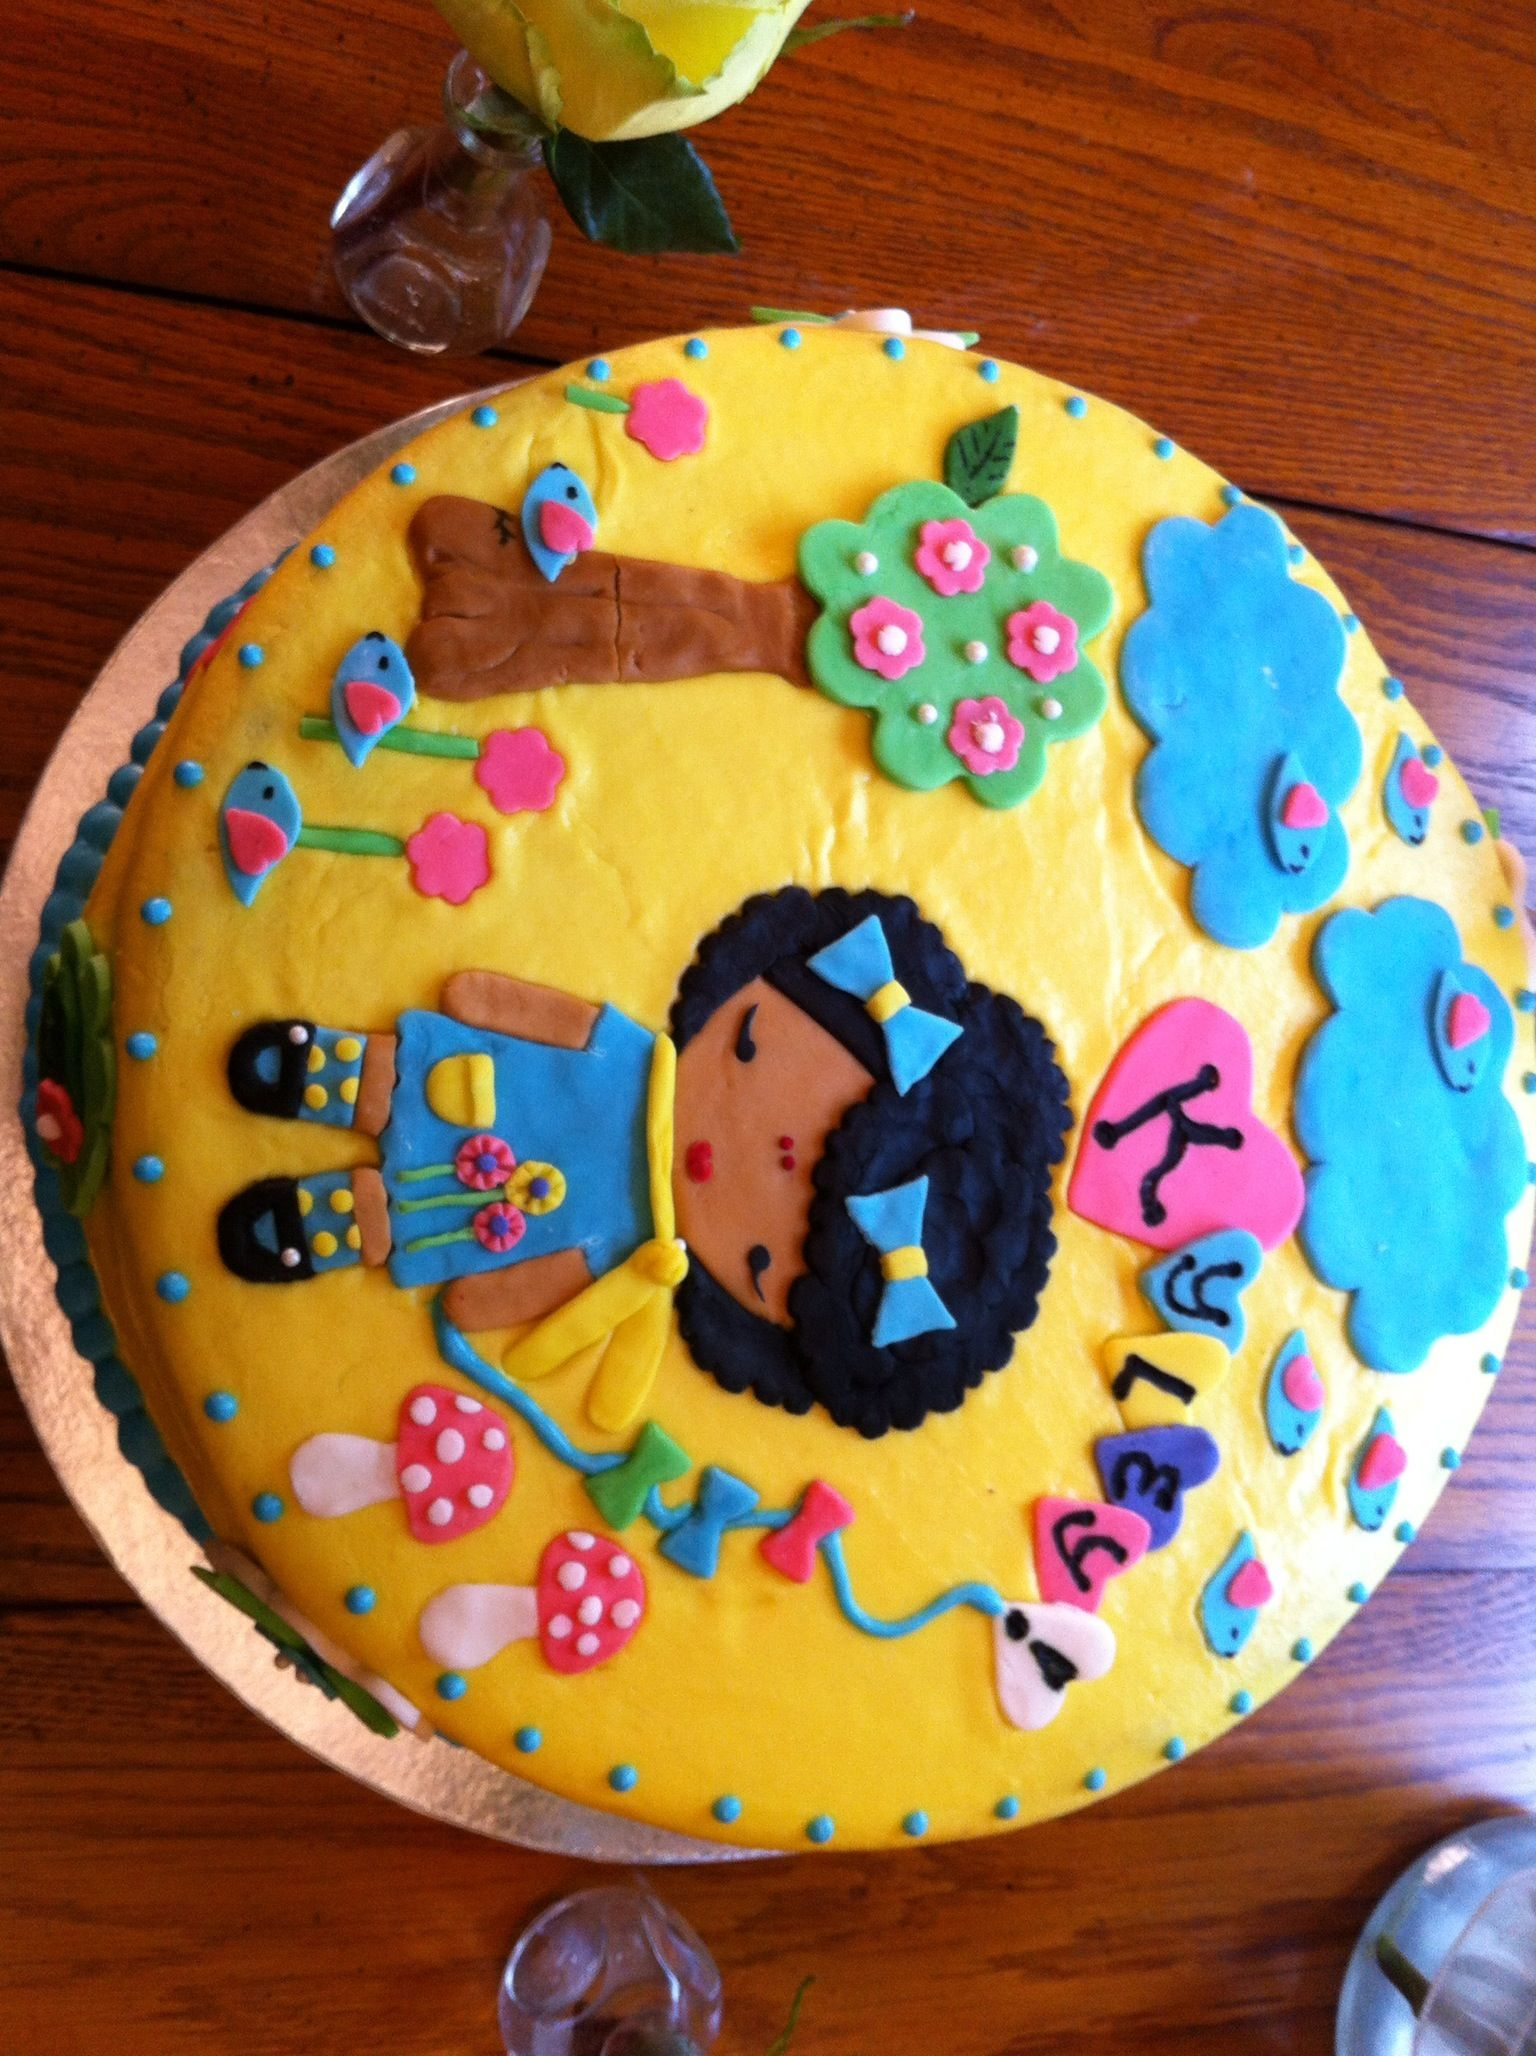 I made this Harajuku style cake for my daughter Kyley.  She has an afro and a heart kite. Sorry about the side shot. Leslie Jones Robinson.